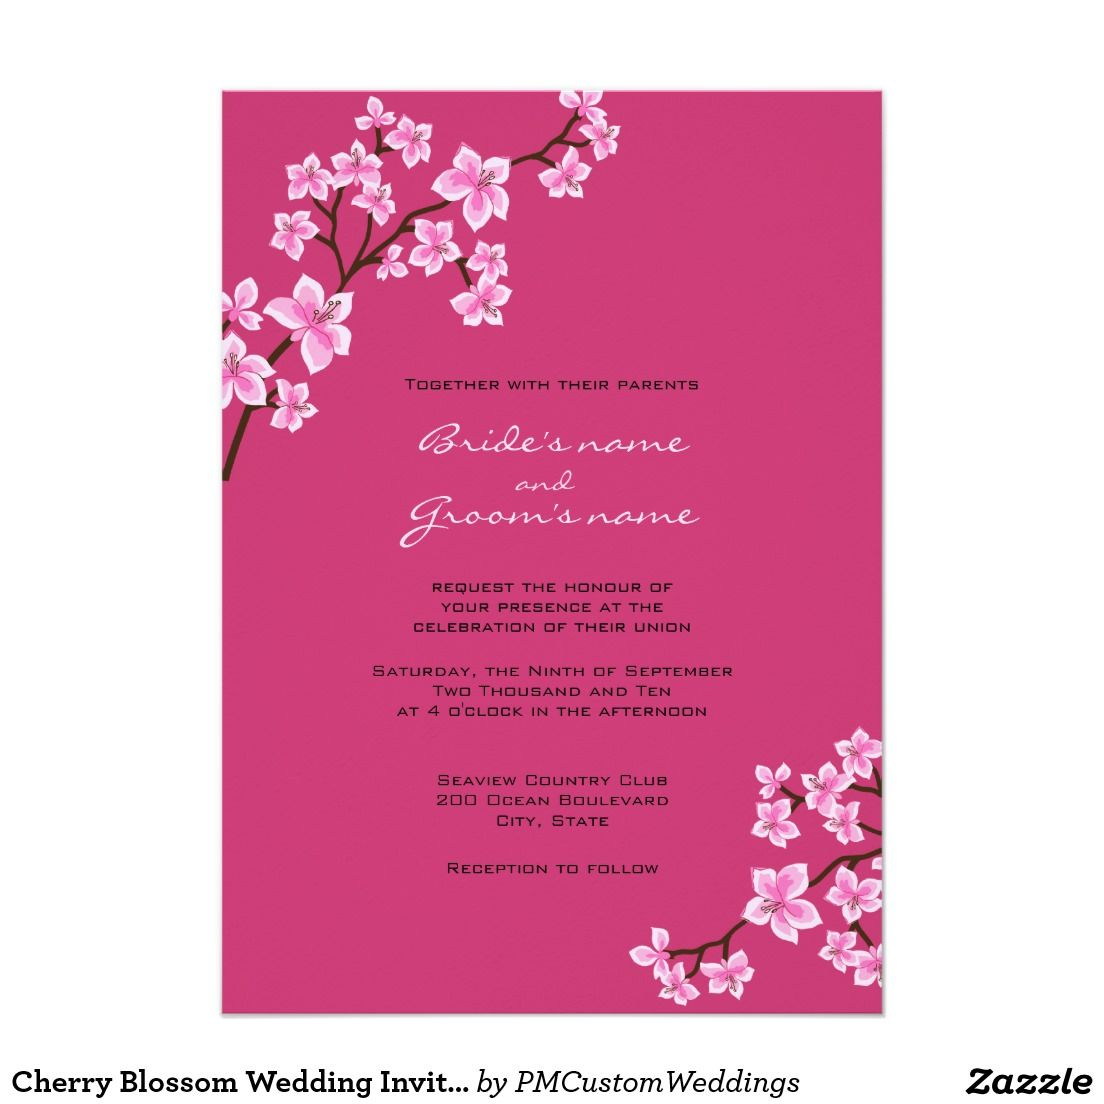 Cherry Blossom Wedding Invitations: Cherry Blossom Wedding Invitation Kit At Reisefeber.org